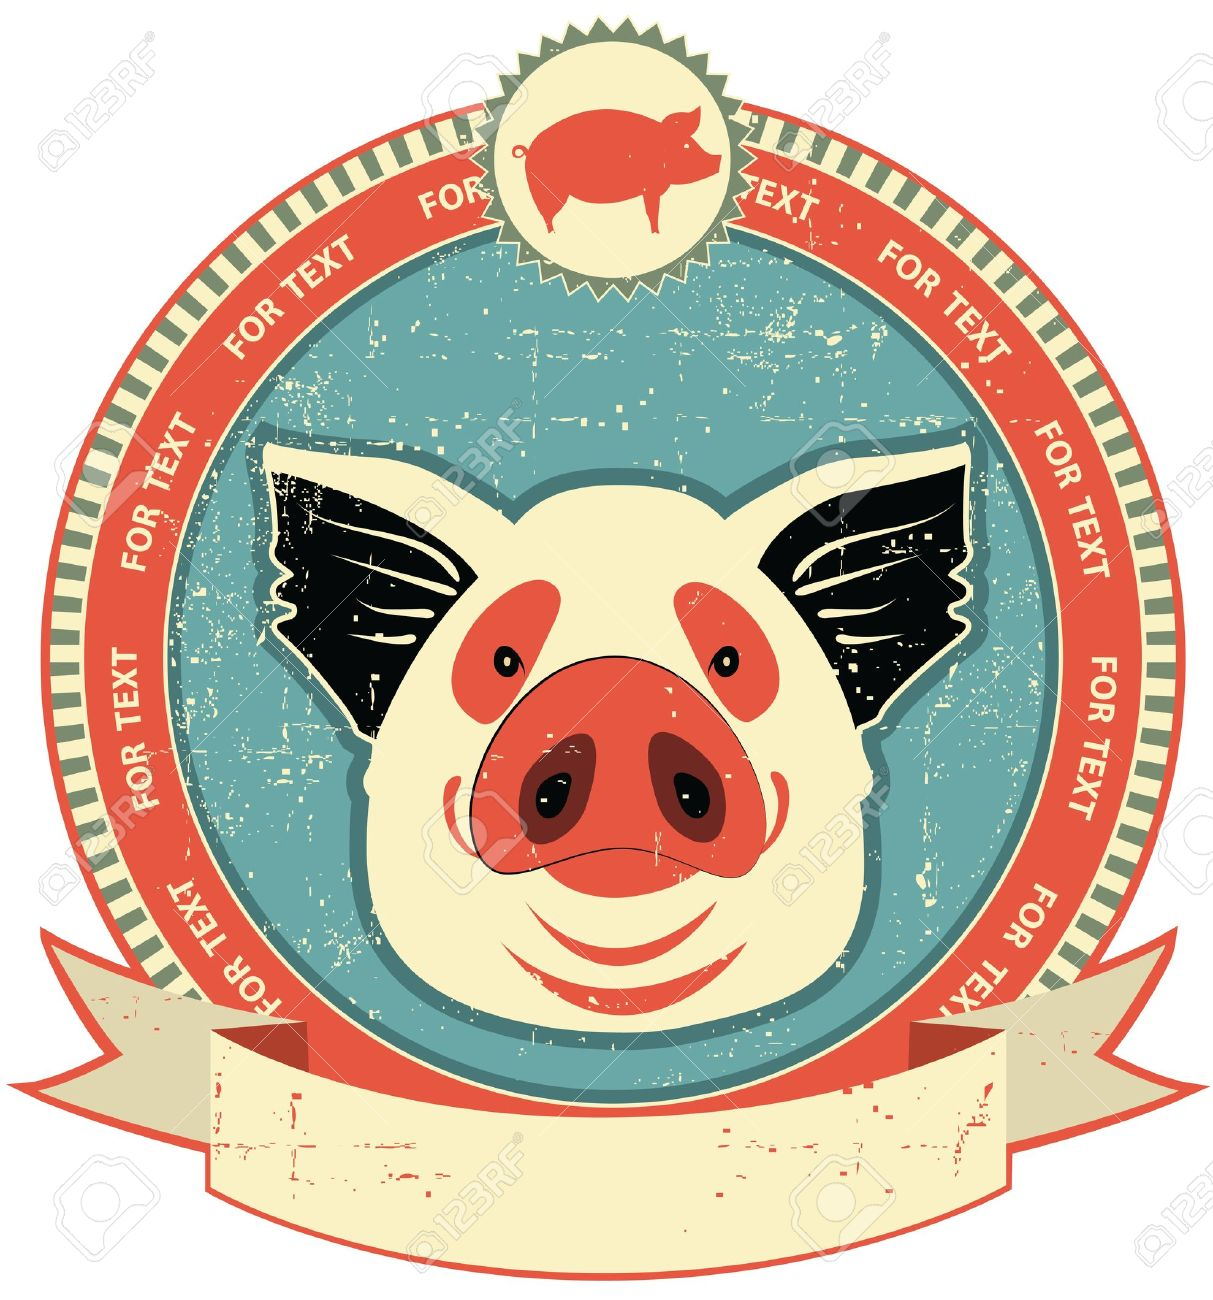 Pig head label on old paper texture.Vintage style Stock Vector - 12331034